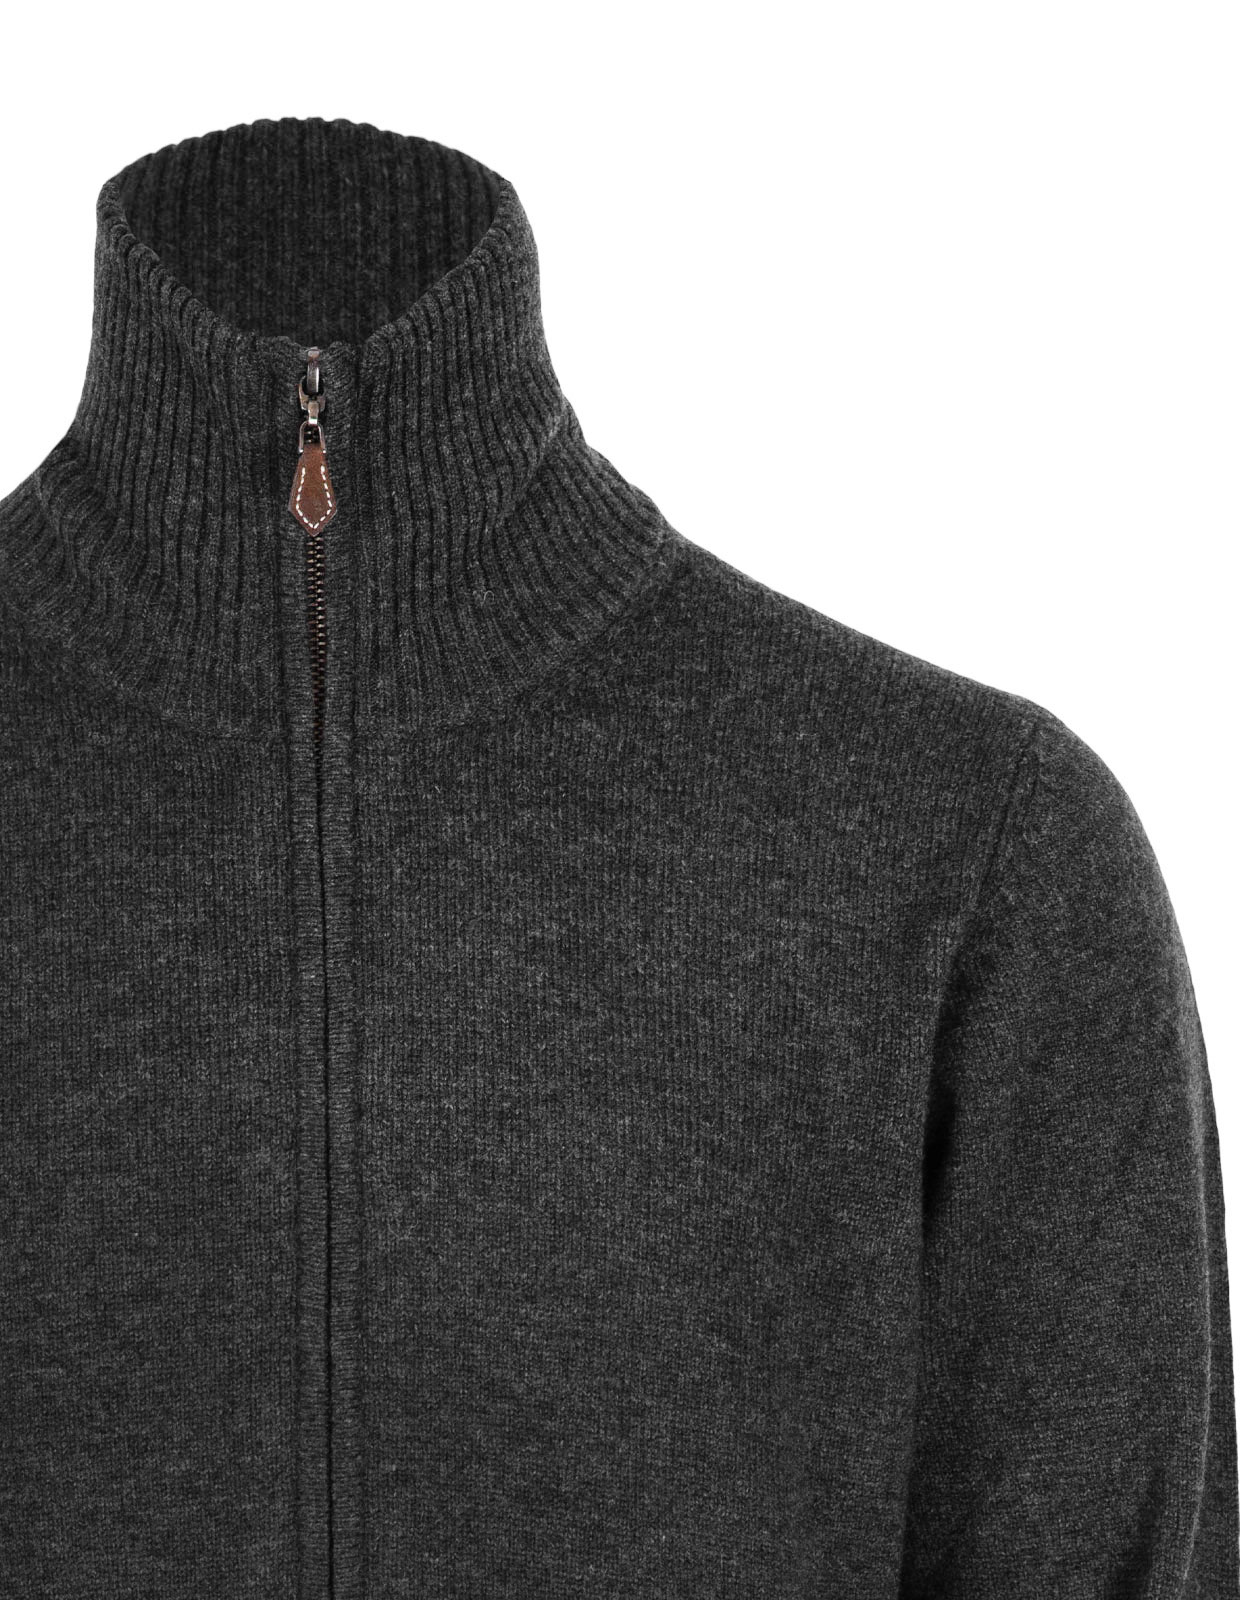 Ballater Full Zip Cardigan Charcoal Stl 56